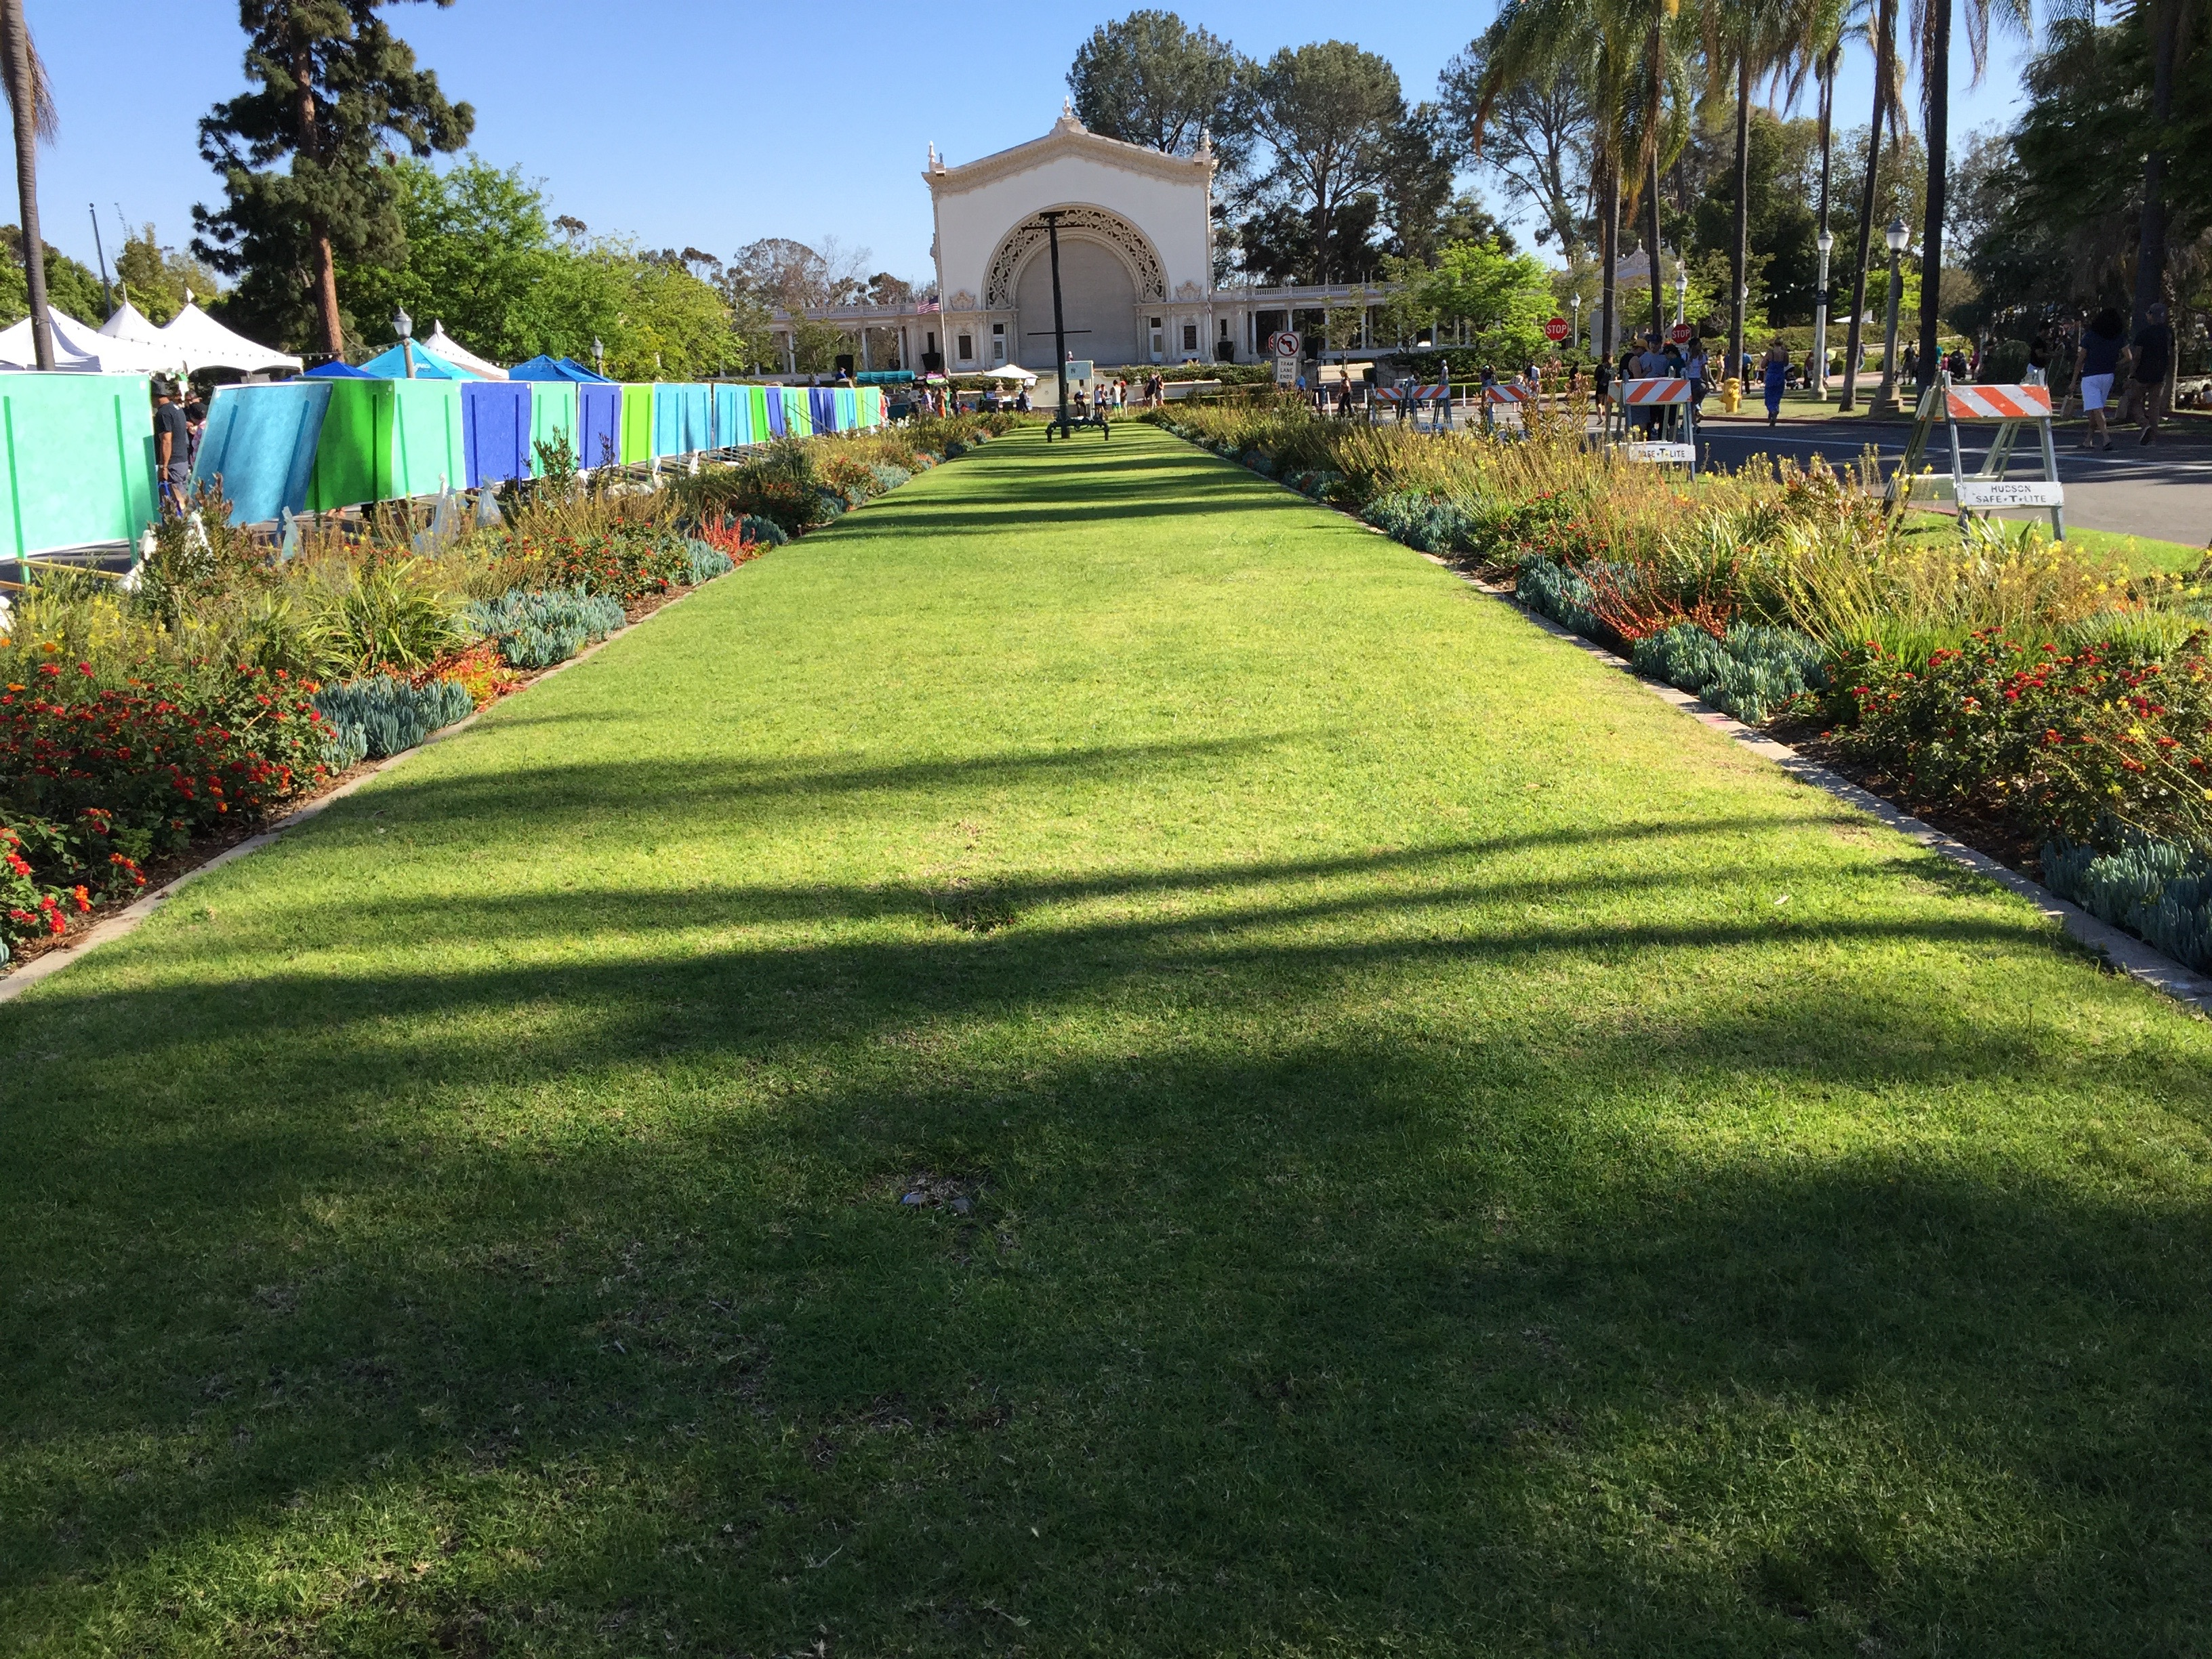 Yesterday I Had The Opportunity To Represent APLD (Association Of Professional  Landscape Designers) At EarthDay In Balboa Park.